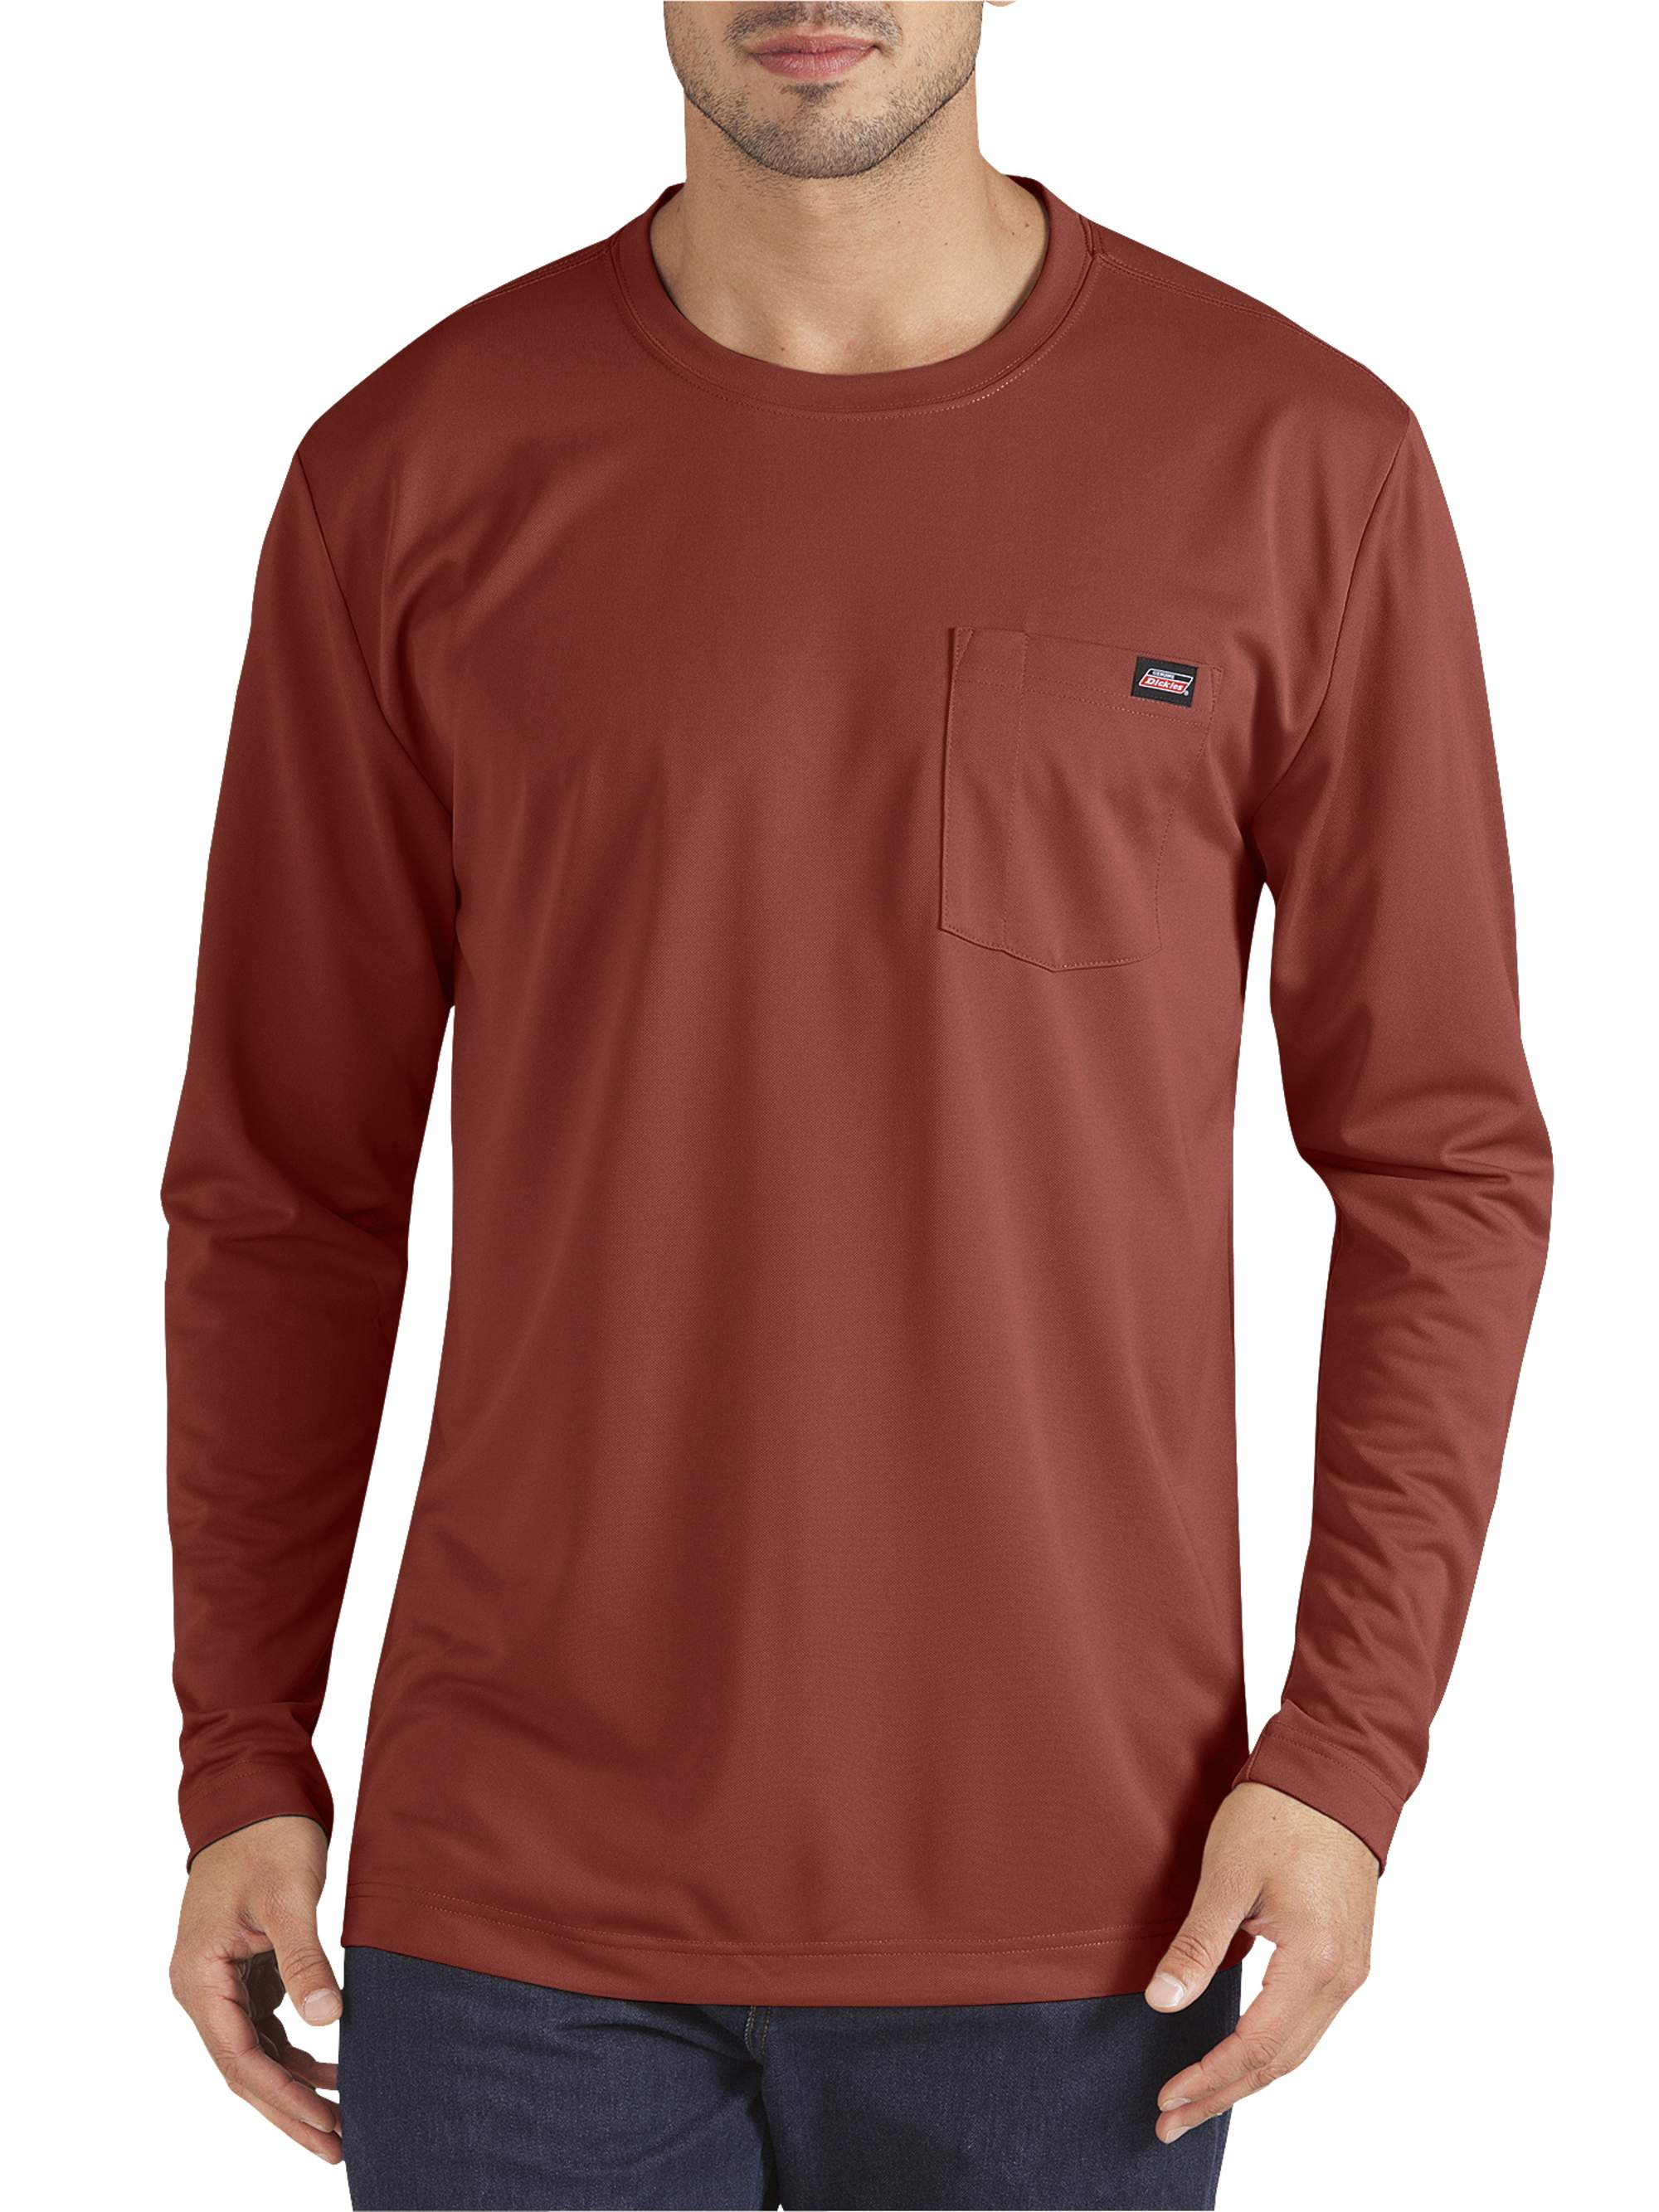 Men's Long Sleeve Performance Pocket T-Shirt